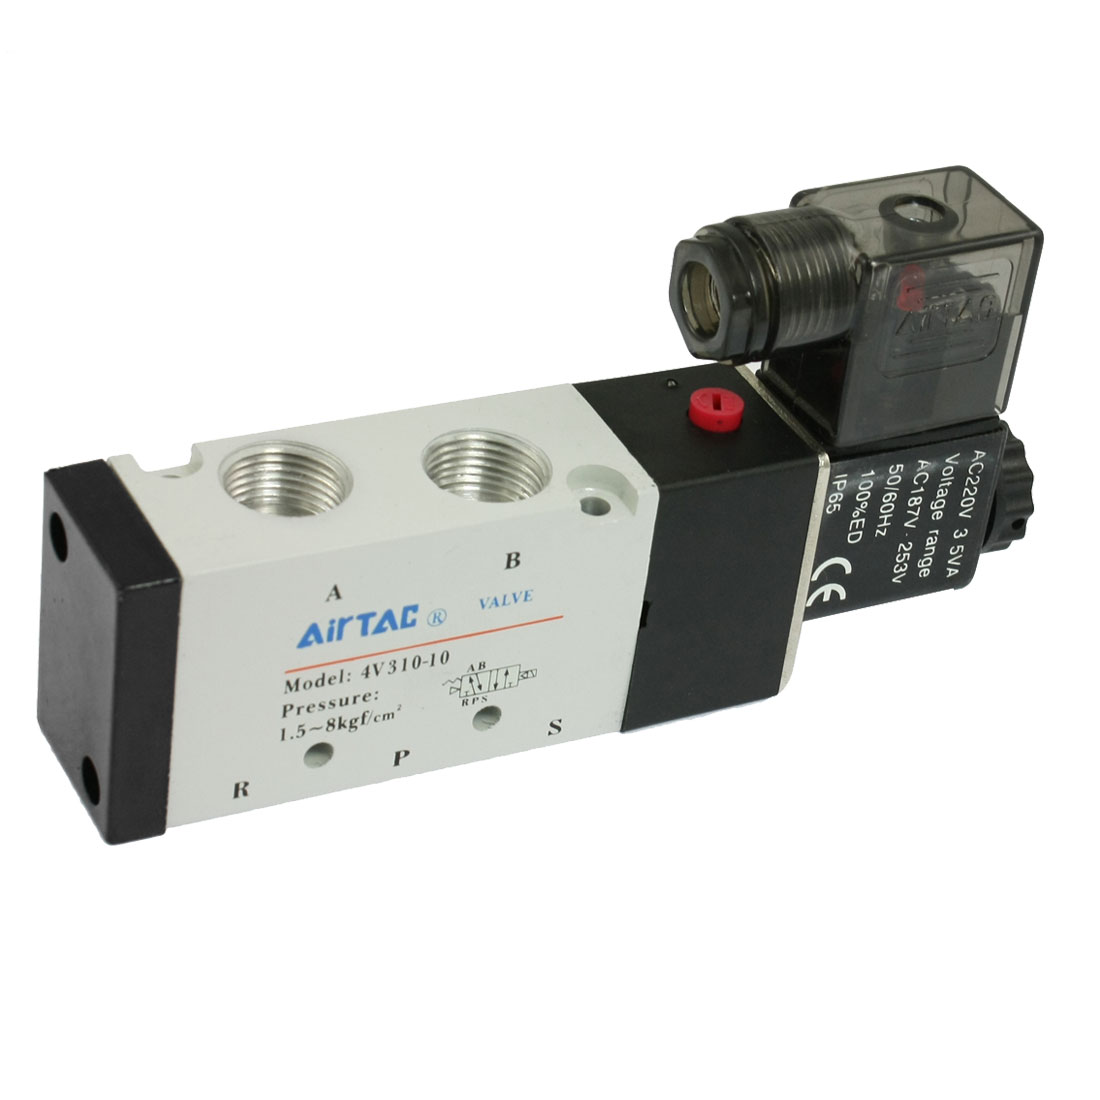 4V310-10 Single Head 2 Position 5 Way Solenoid Valve AC 220V 3.5VA